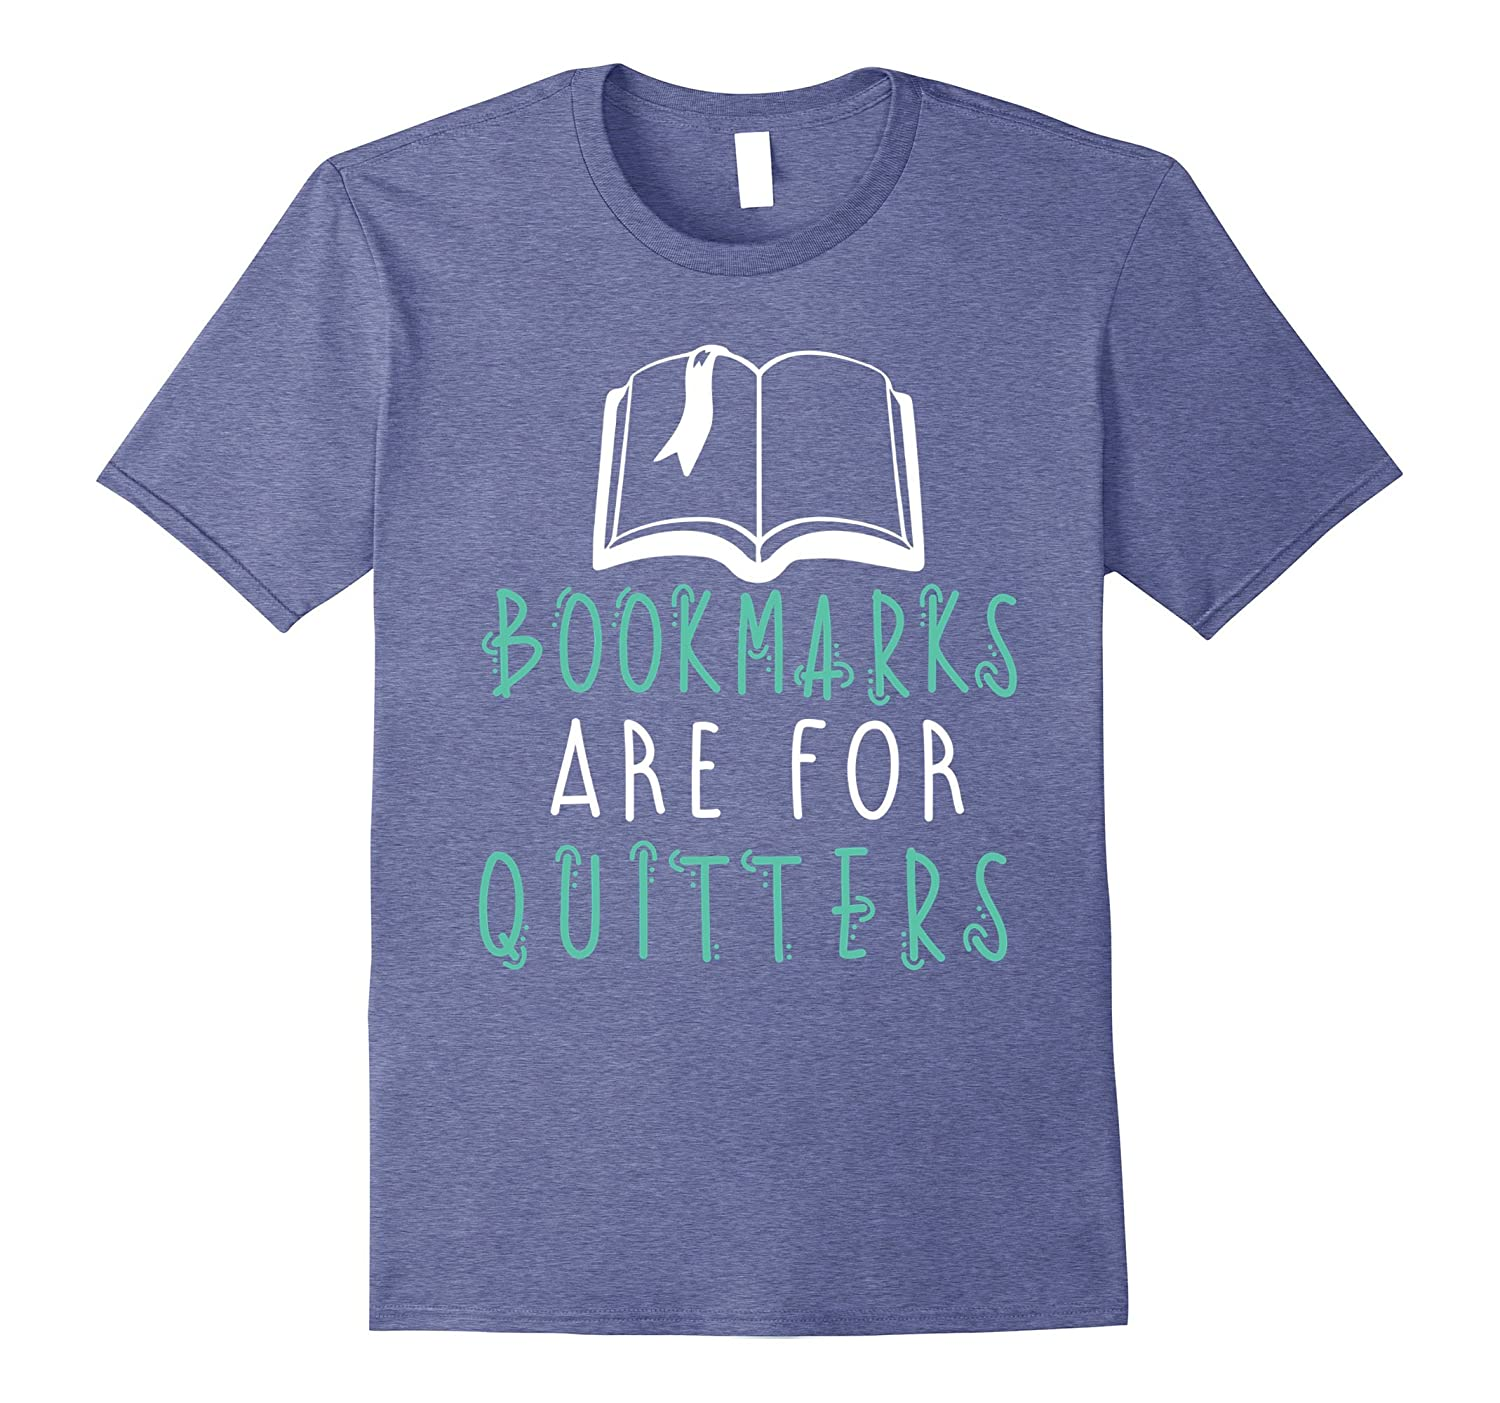 Bookmarks Are For Quitters Reading Shirt - Funny Book Tshirt-alottee gift